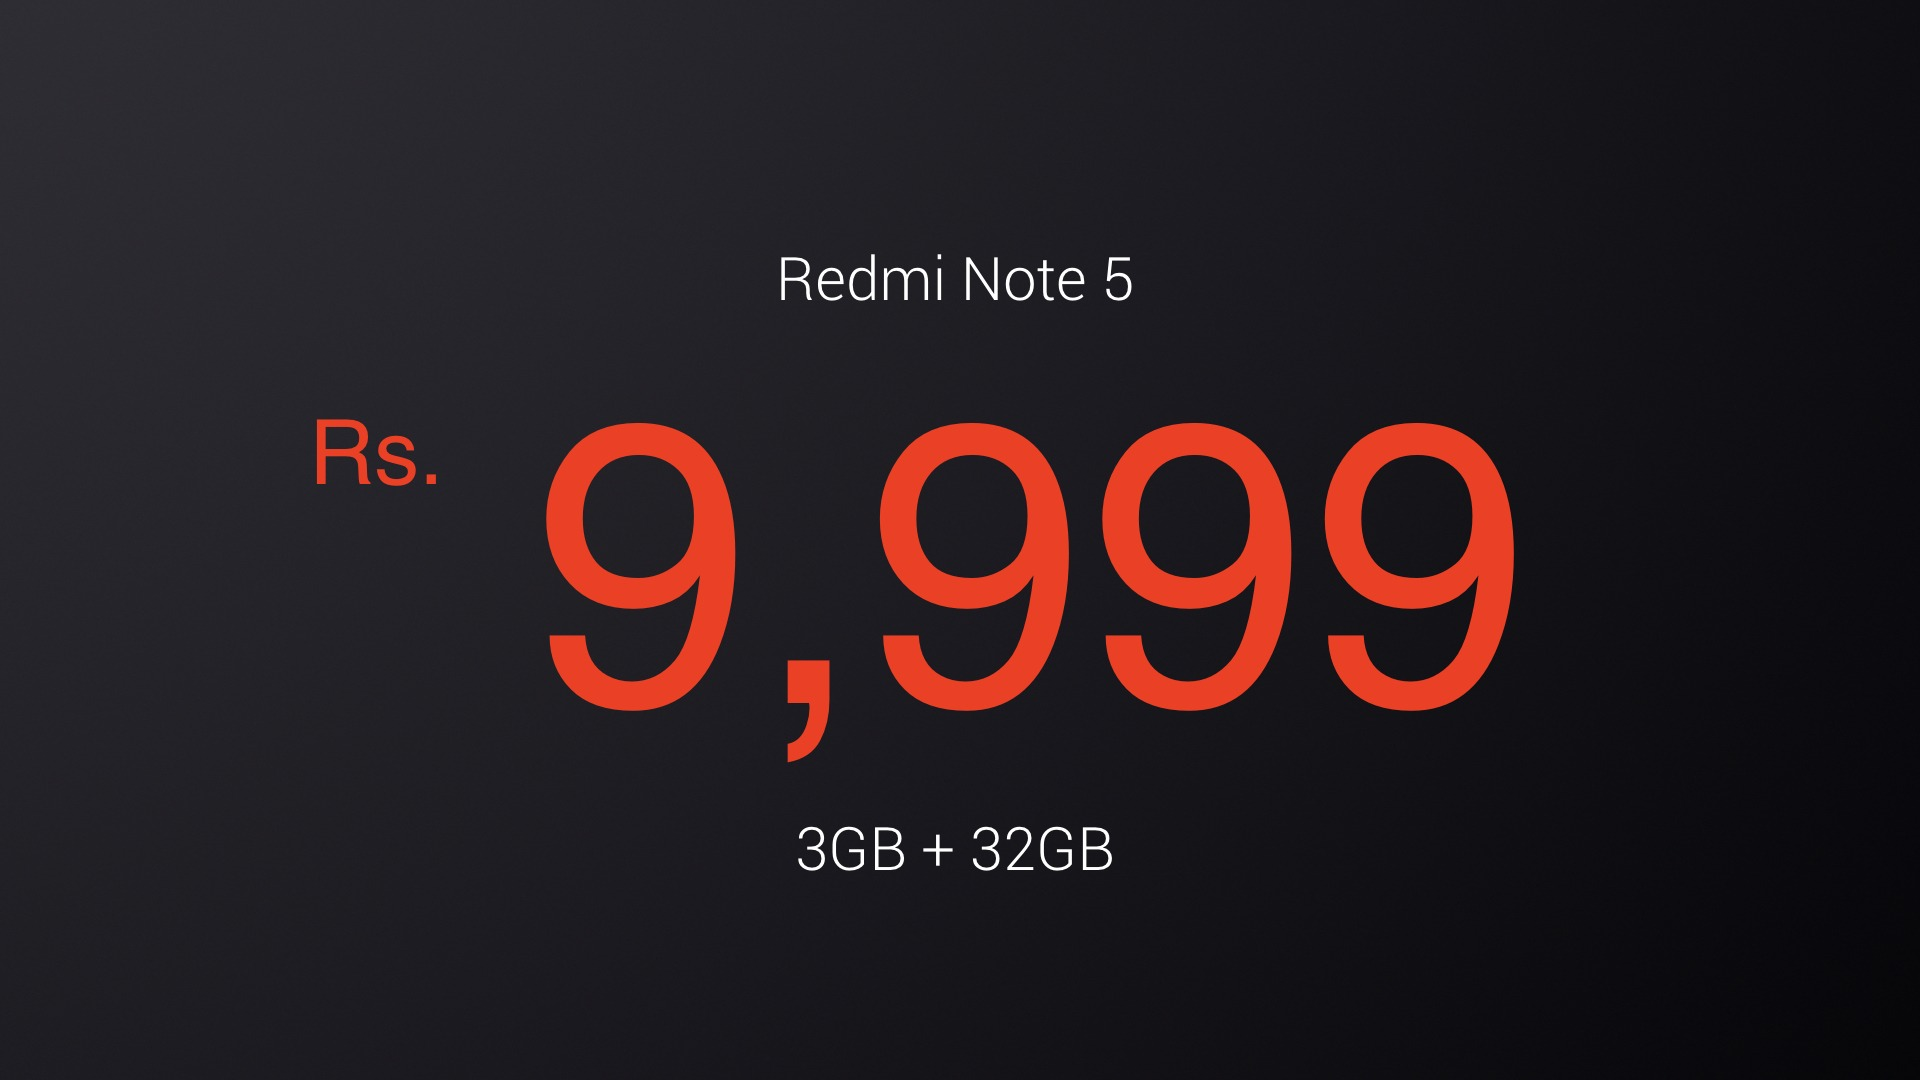 Xiaomi Redmi Note 5 officially launched - Here's all you need to know 7